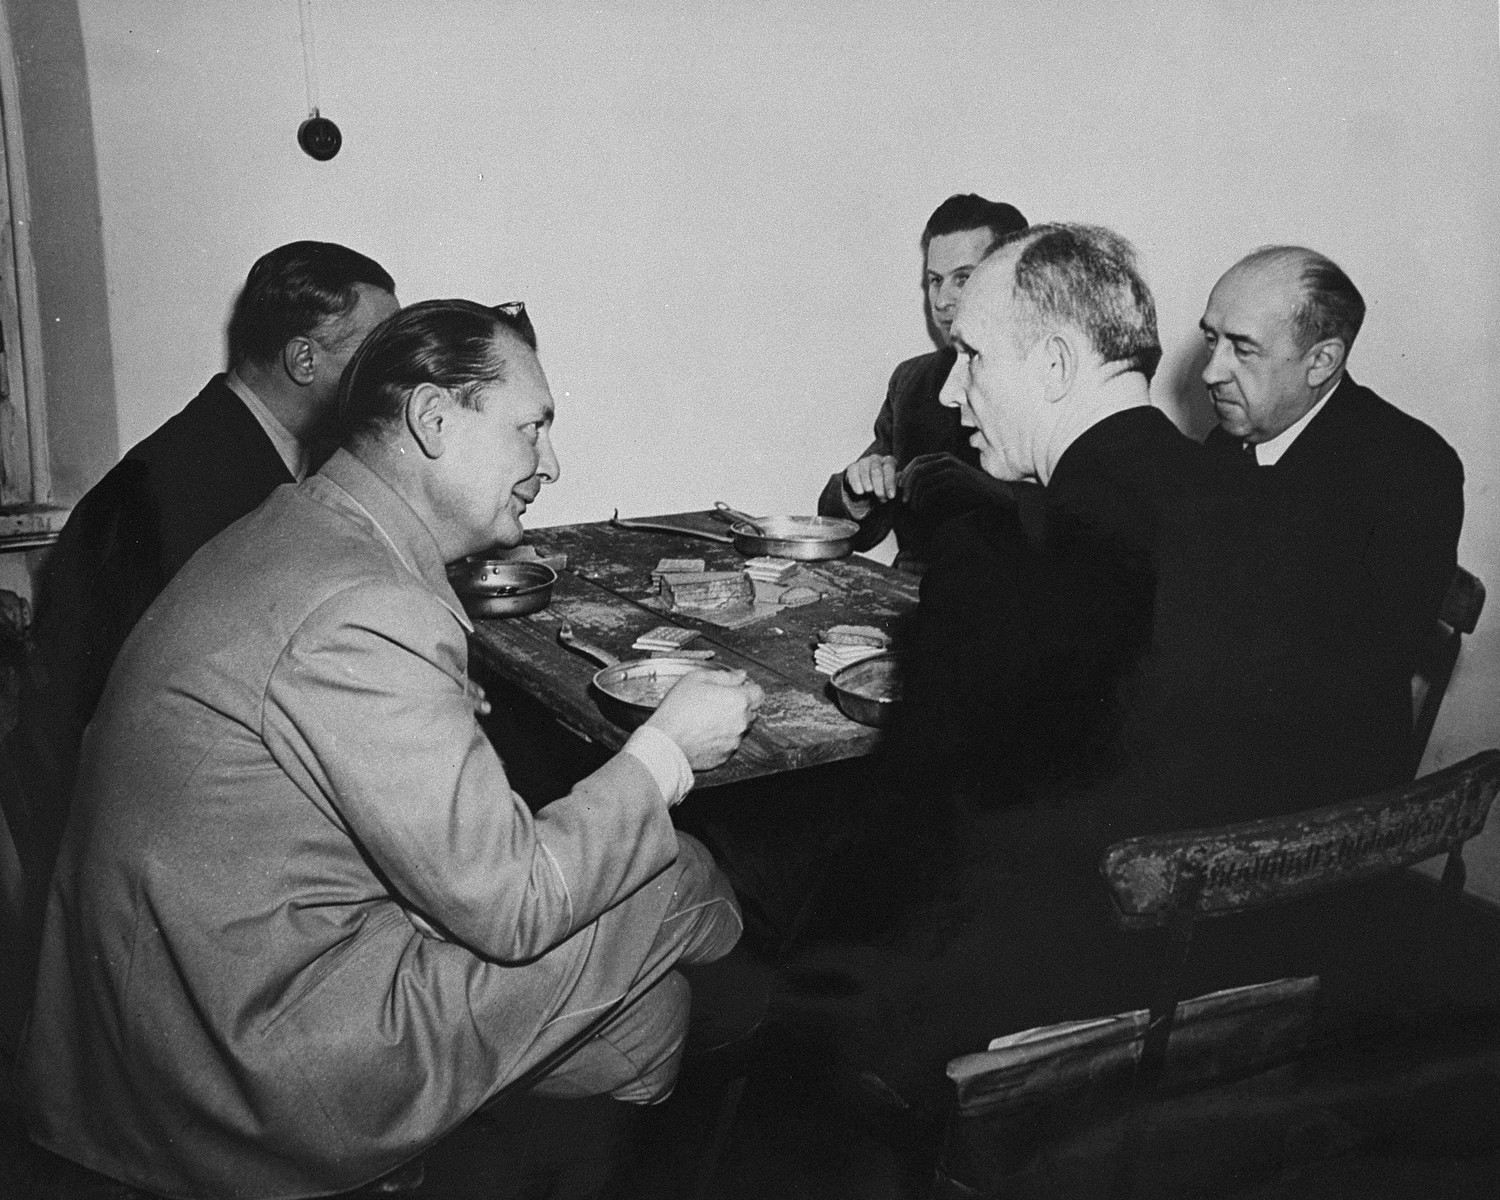 International Military Tribunal defendants eat lunch during a pause in the trial.  Pictured counterclockwise from the front left are: Hermann Goering, Karl Doenitz, Walther Funk, Baldur von Schirach, and Alfred Rosenberg.